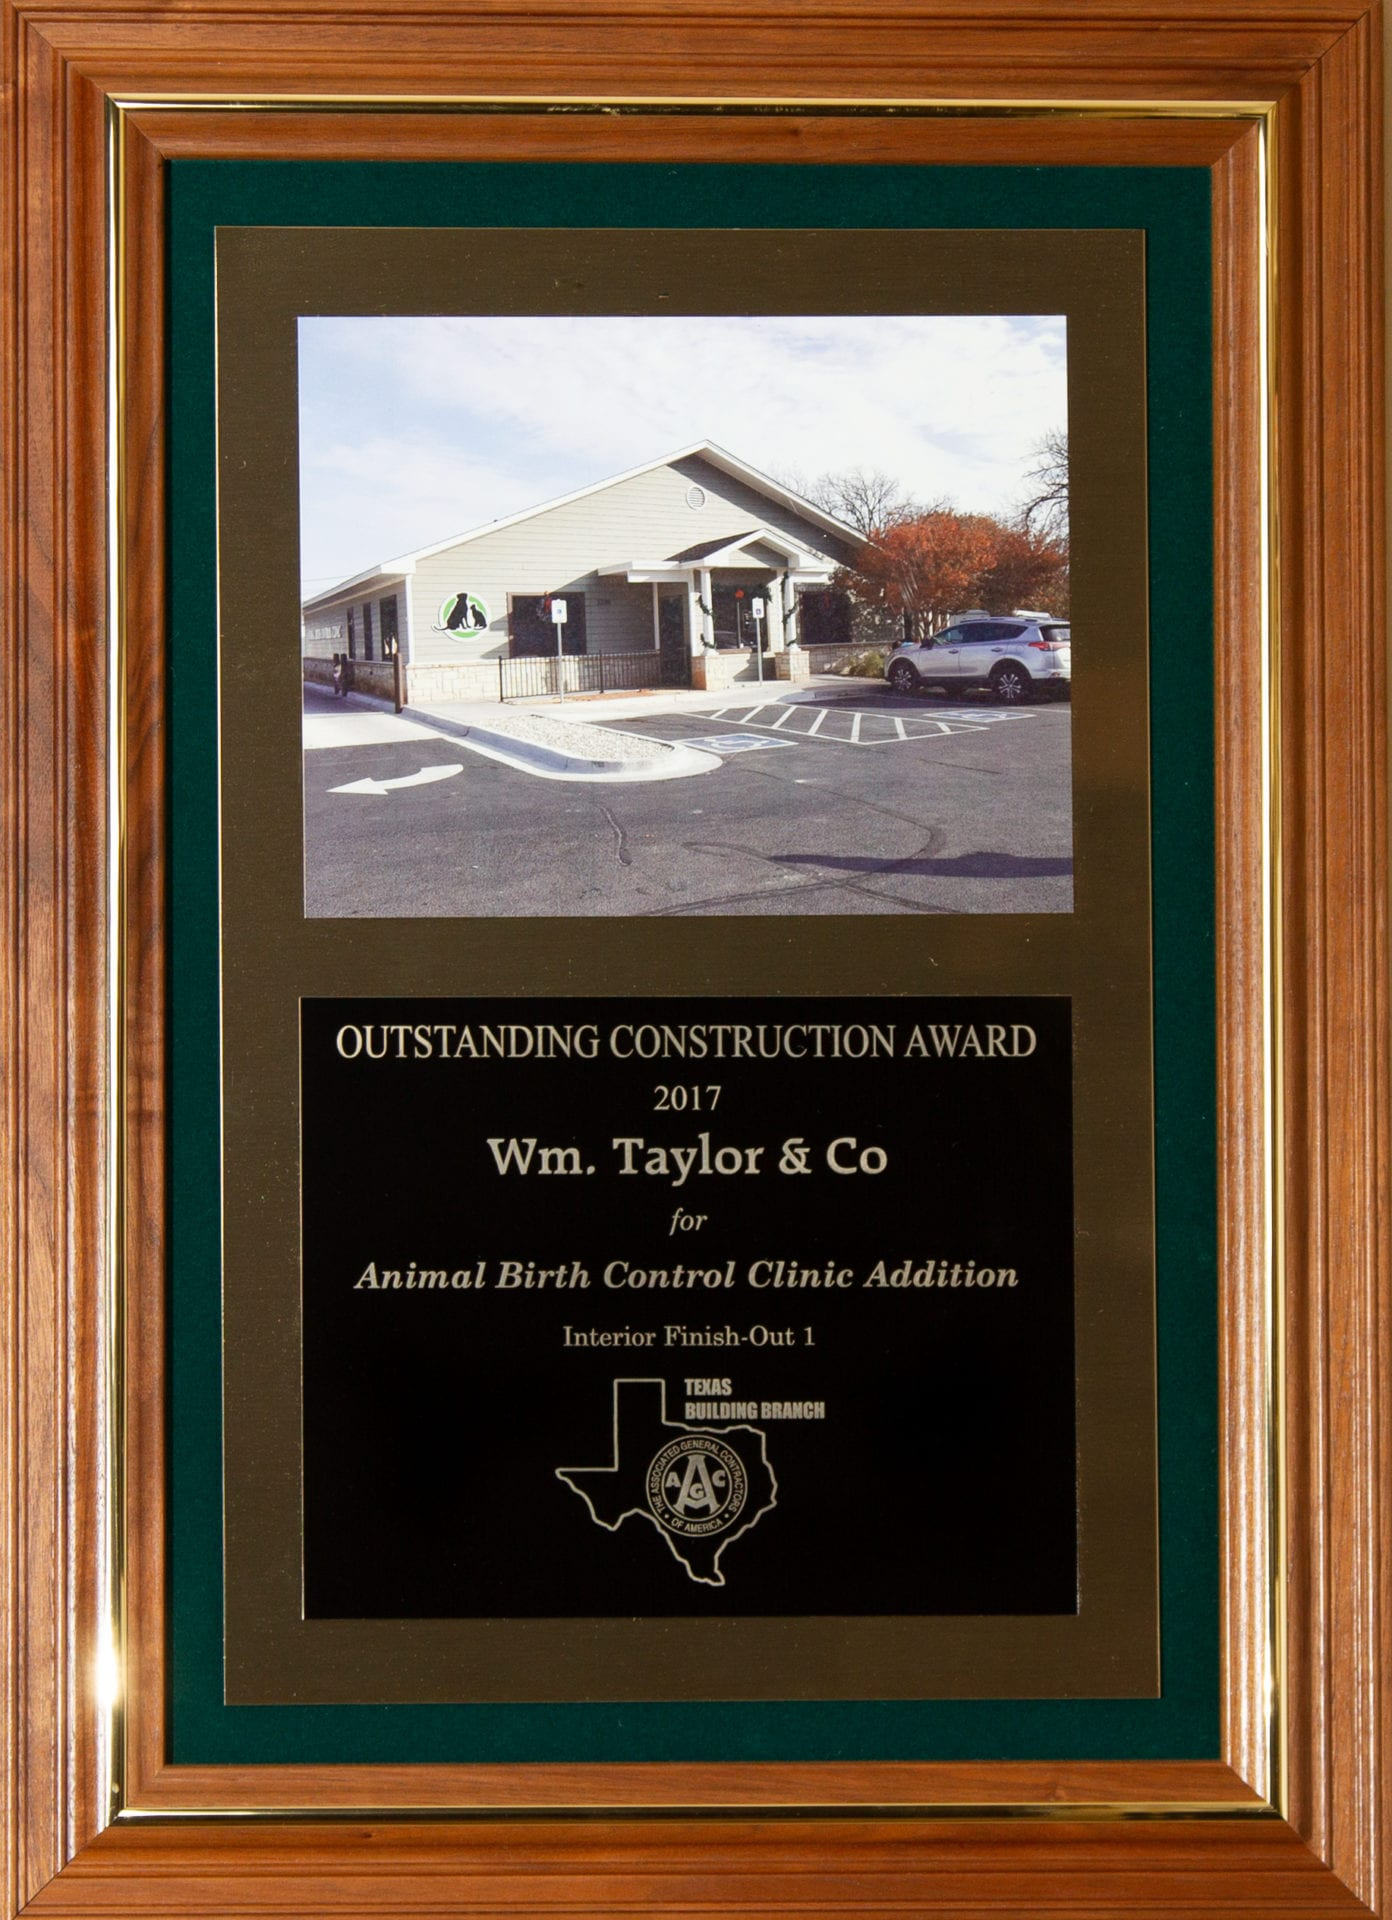 Wm. Taylor & Co. General Contractors - Outstanding Construction Award 2017